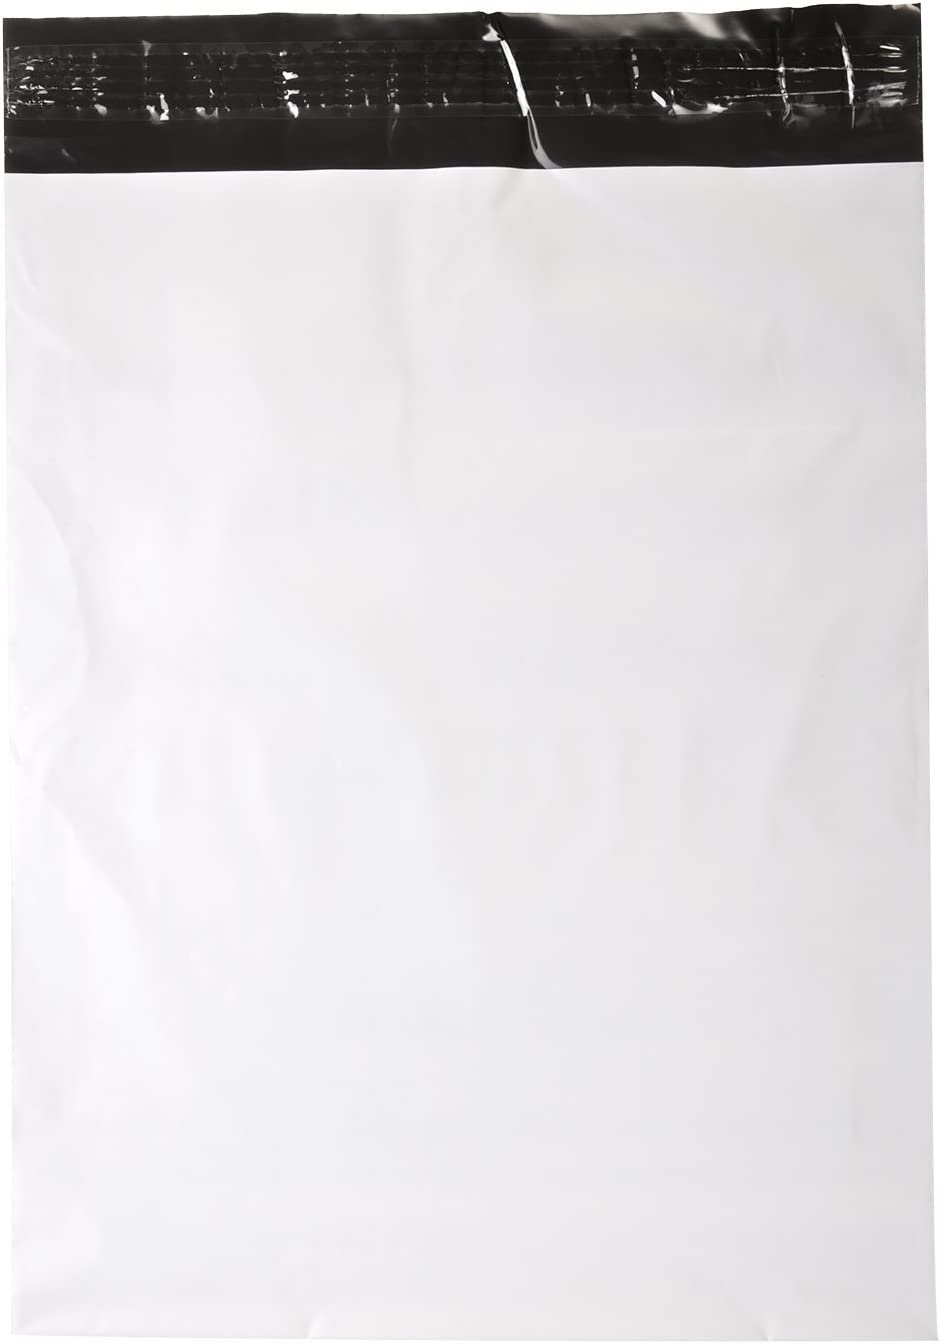 Owlpack Poly Mailer Envelopes 2.5 Mil Plastic Self Seal Mail Bags for Shipping and Packaging 12 x 15.5 Inches, Pack of 100